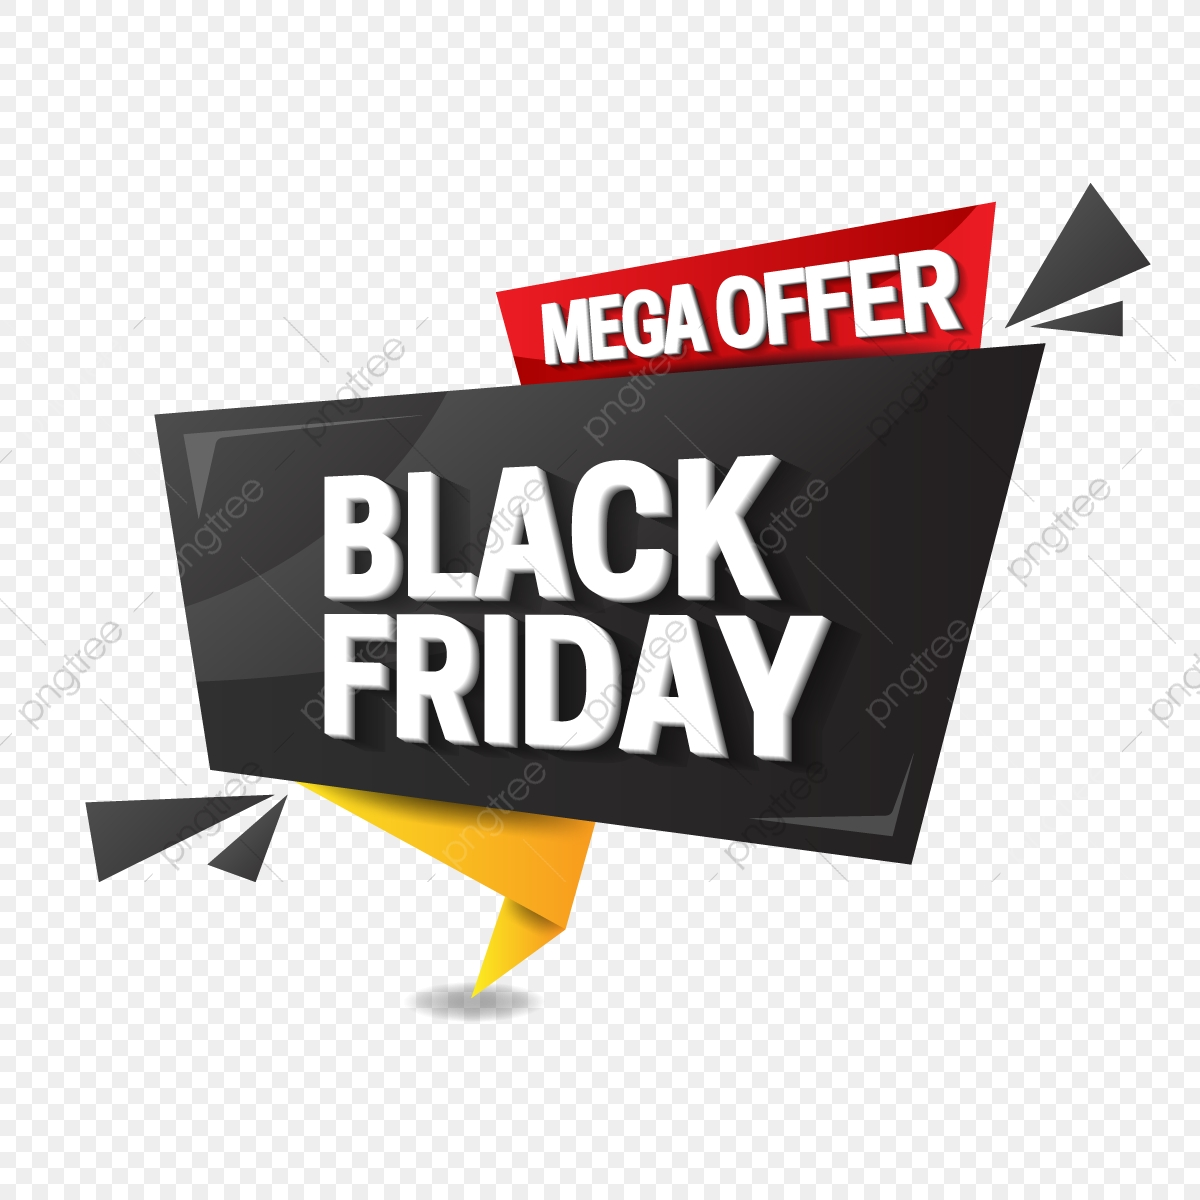 Black Friday Sale In Origami Style, Black Friday, Sale, Banner PNG.